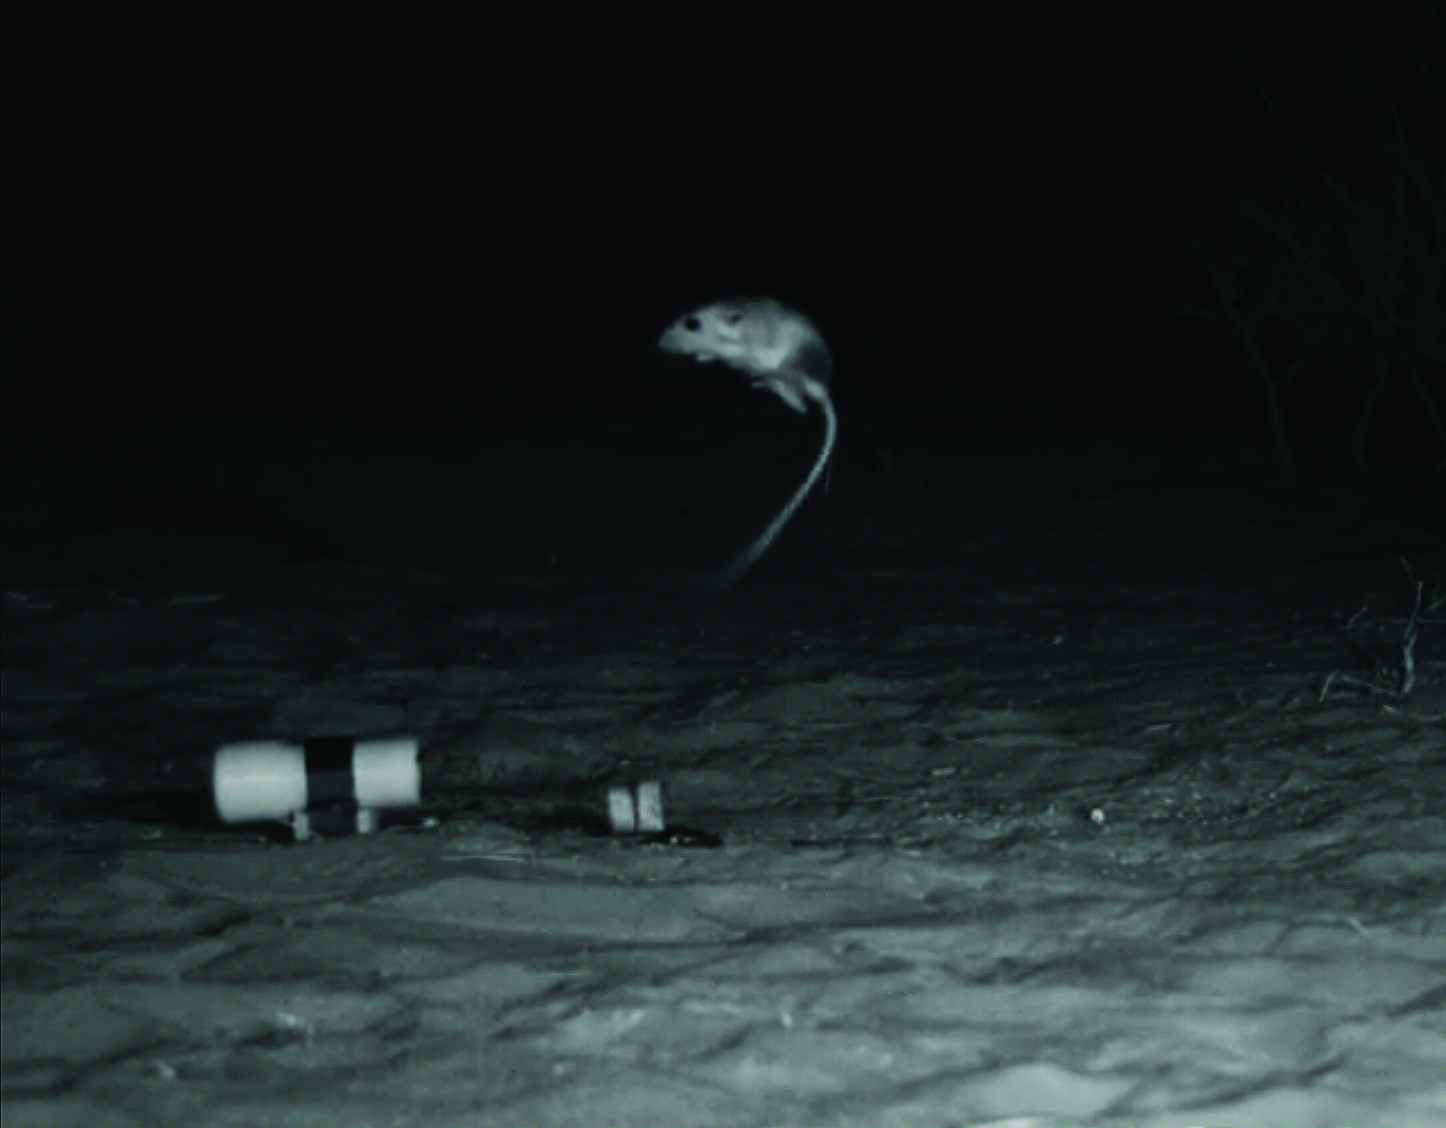 Figure 3. A desert kangaroo rat leaping in response to the rattlesnake strike simulator (RSS). Note: the black marking on the hindquarters is from fur dye and is not a coloration typical of kangaroo rats.